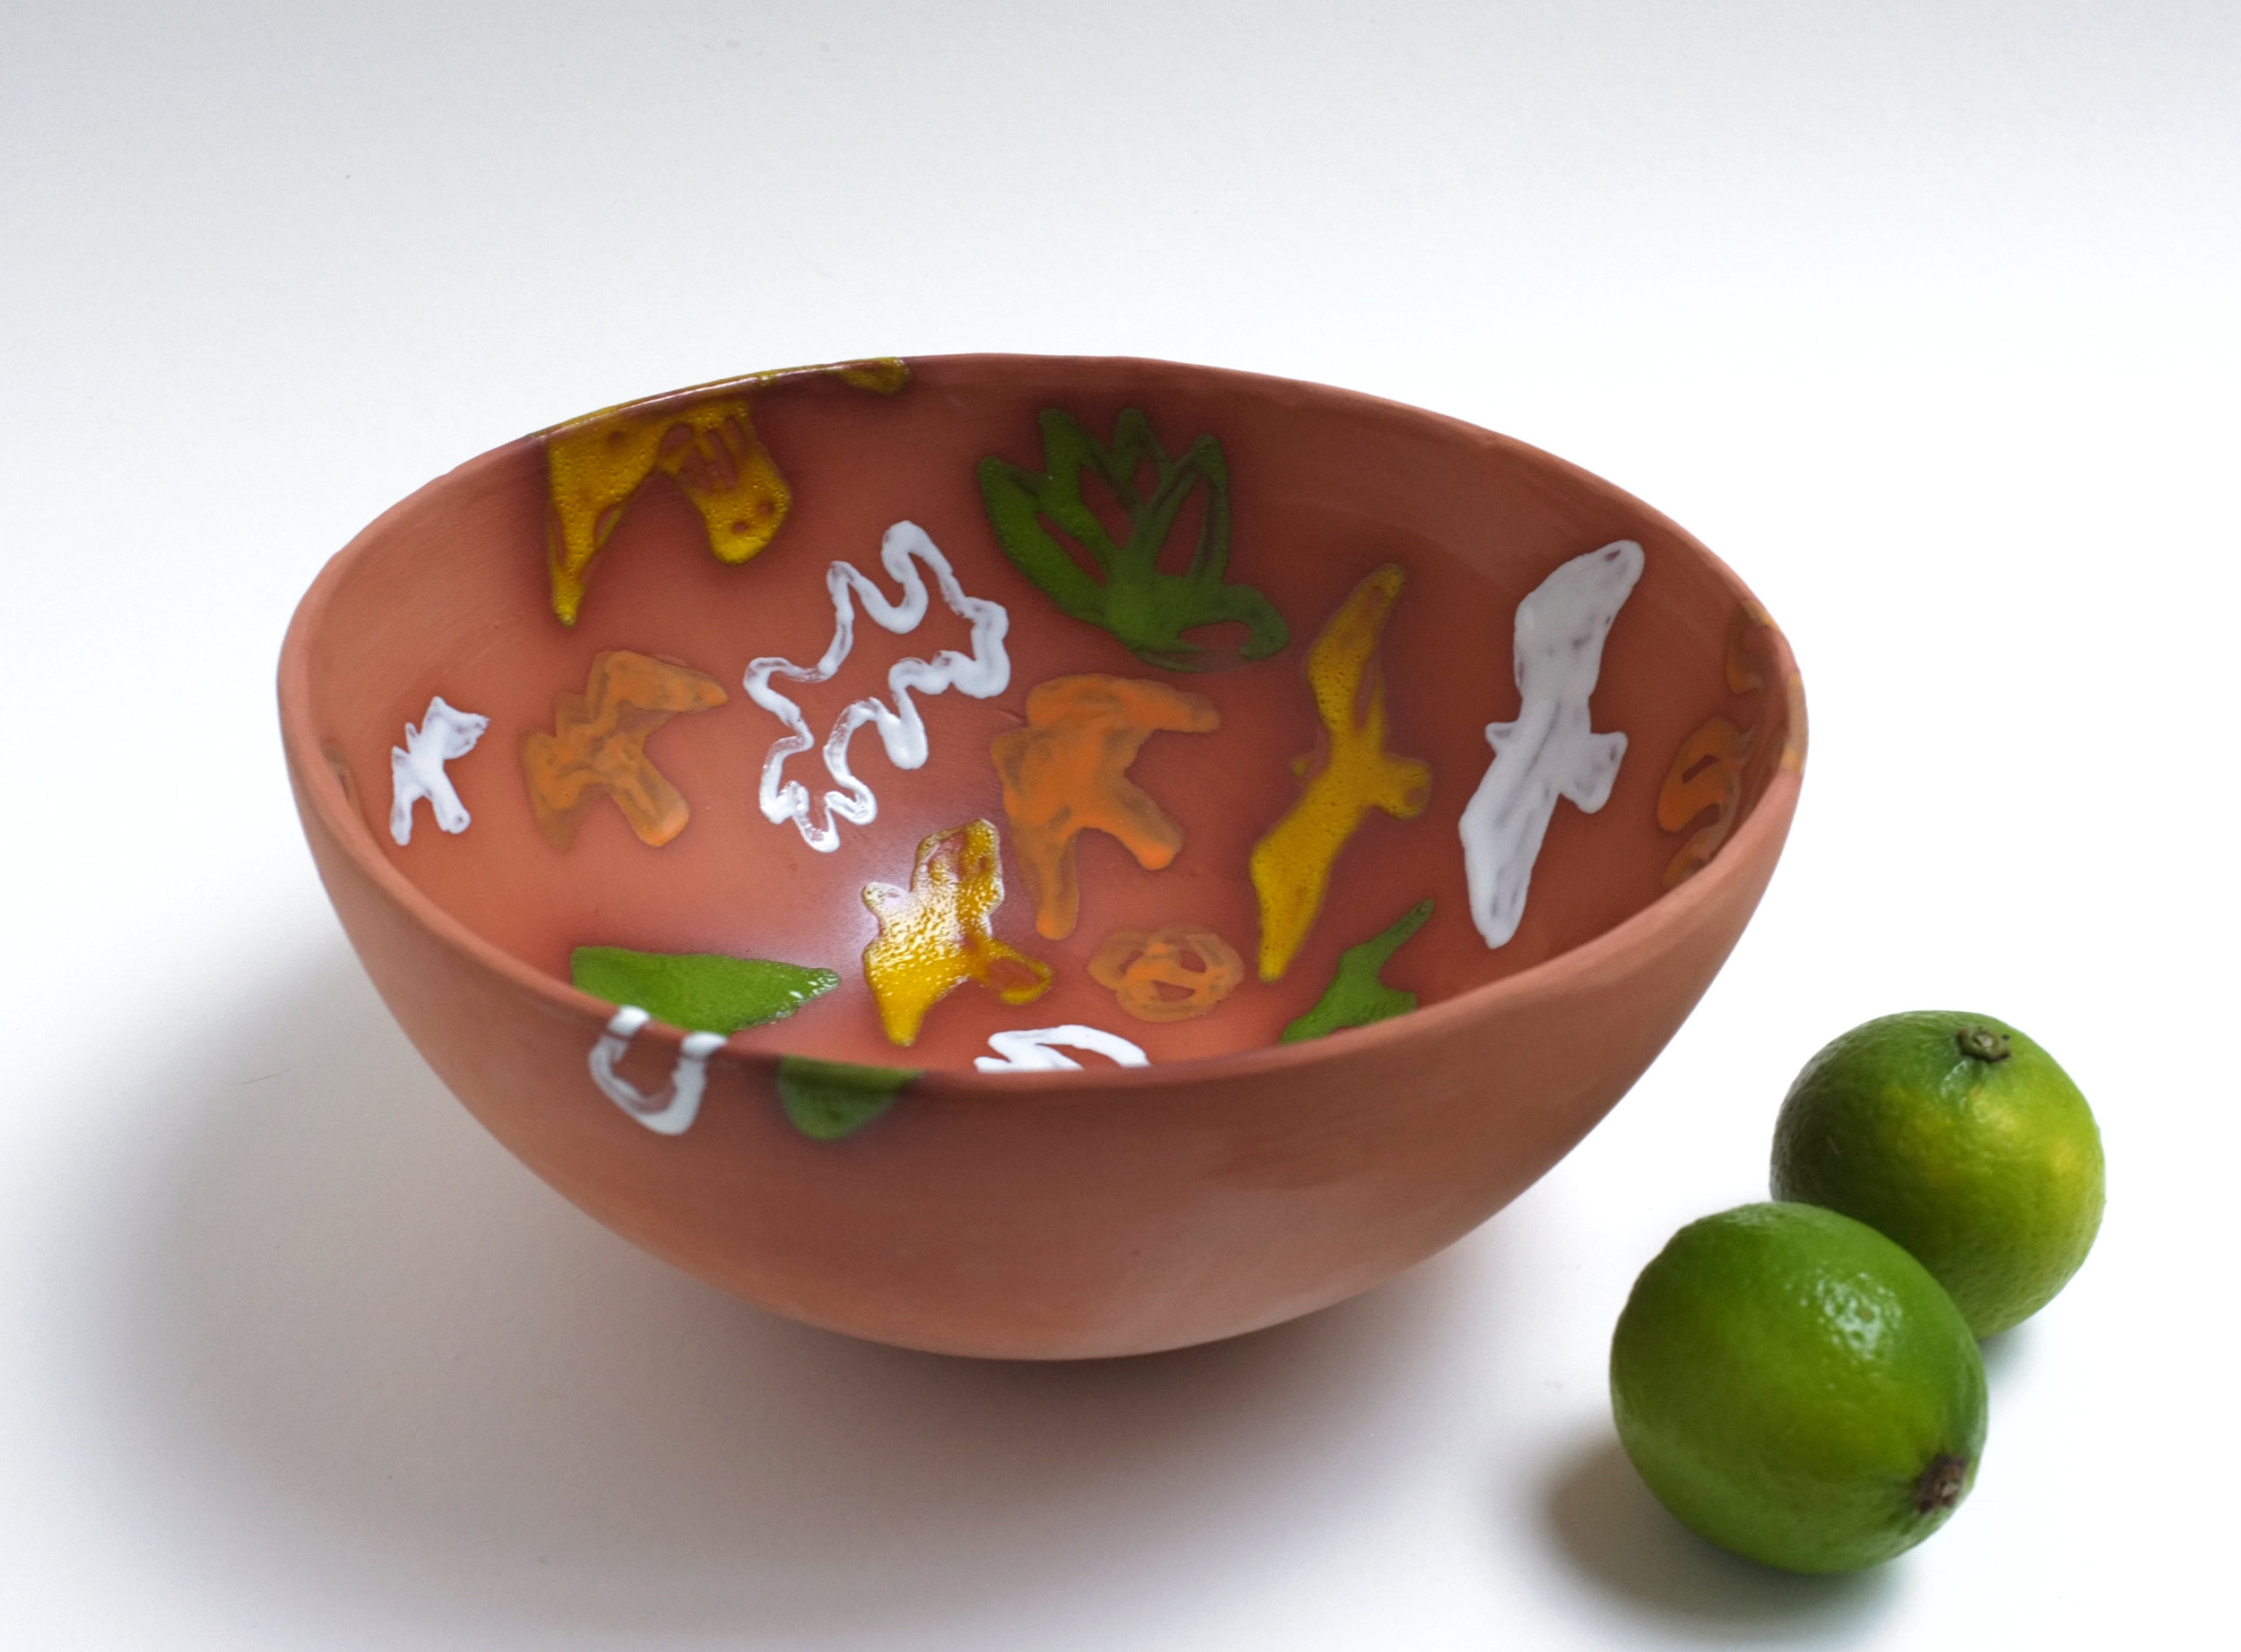 Color-birds-terracotta-plate-Ingaga-2.jpg